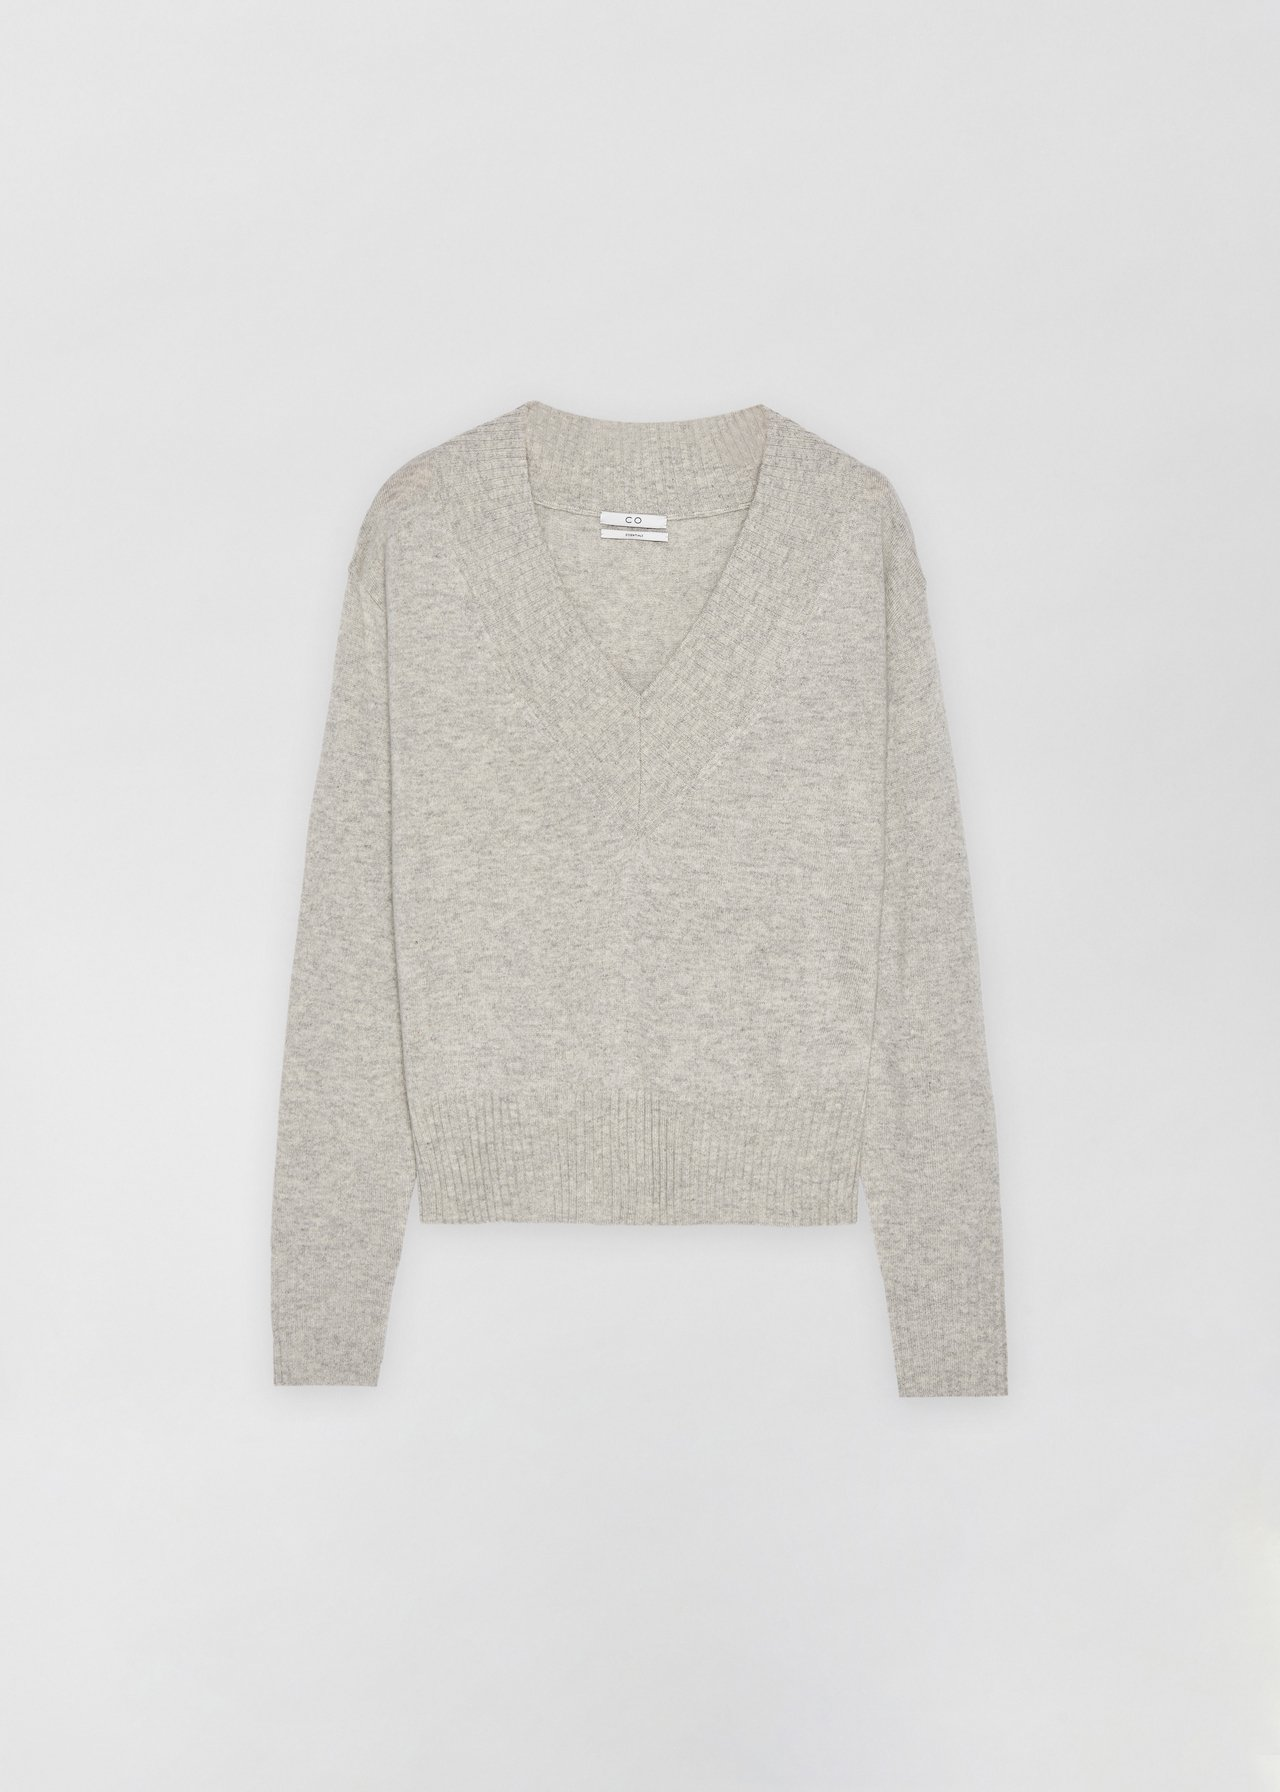 Cashmere V-Neck Sweater - Black in Light Grey by Co Collections